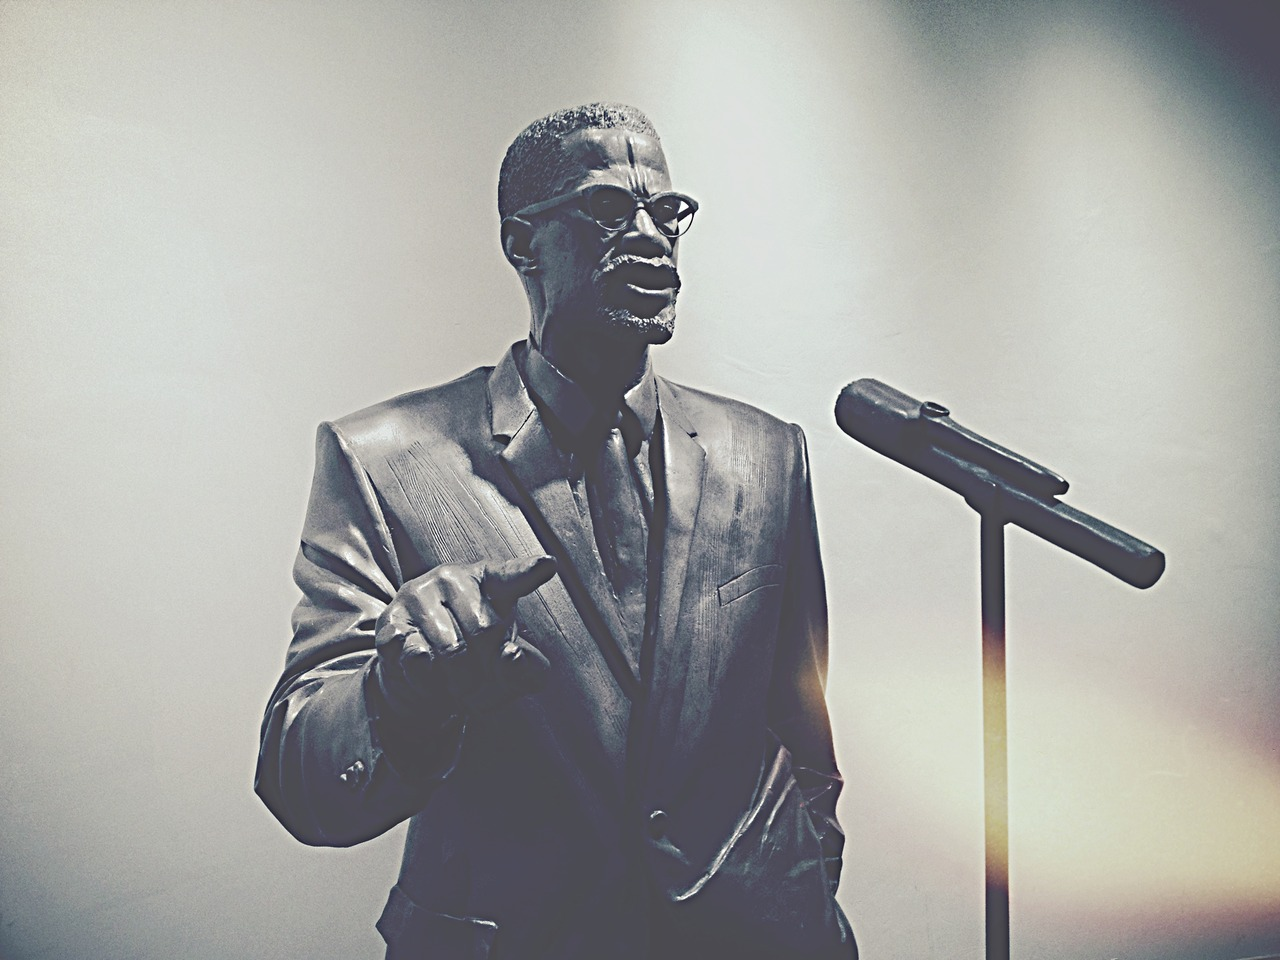 Black Shining Prince #peppersearching #malcomx #statue